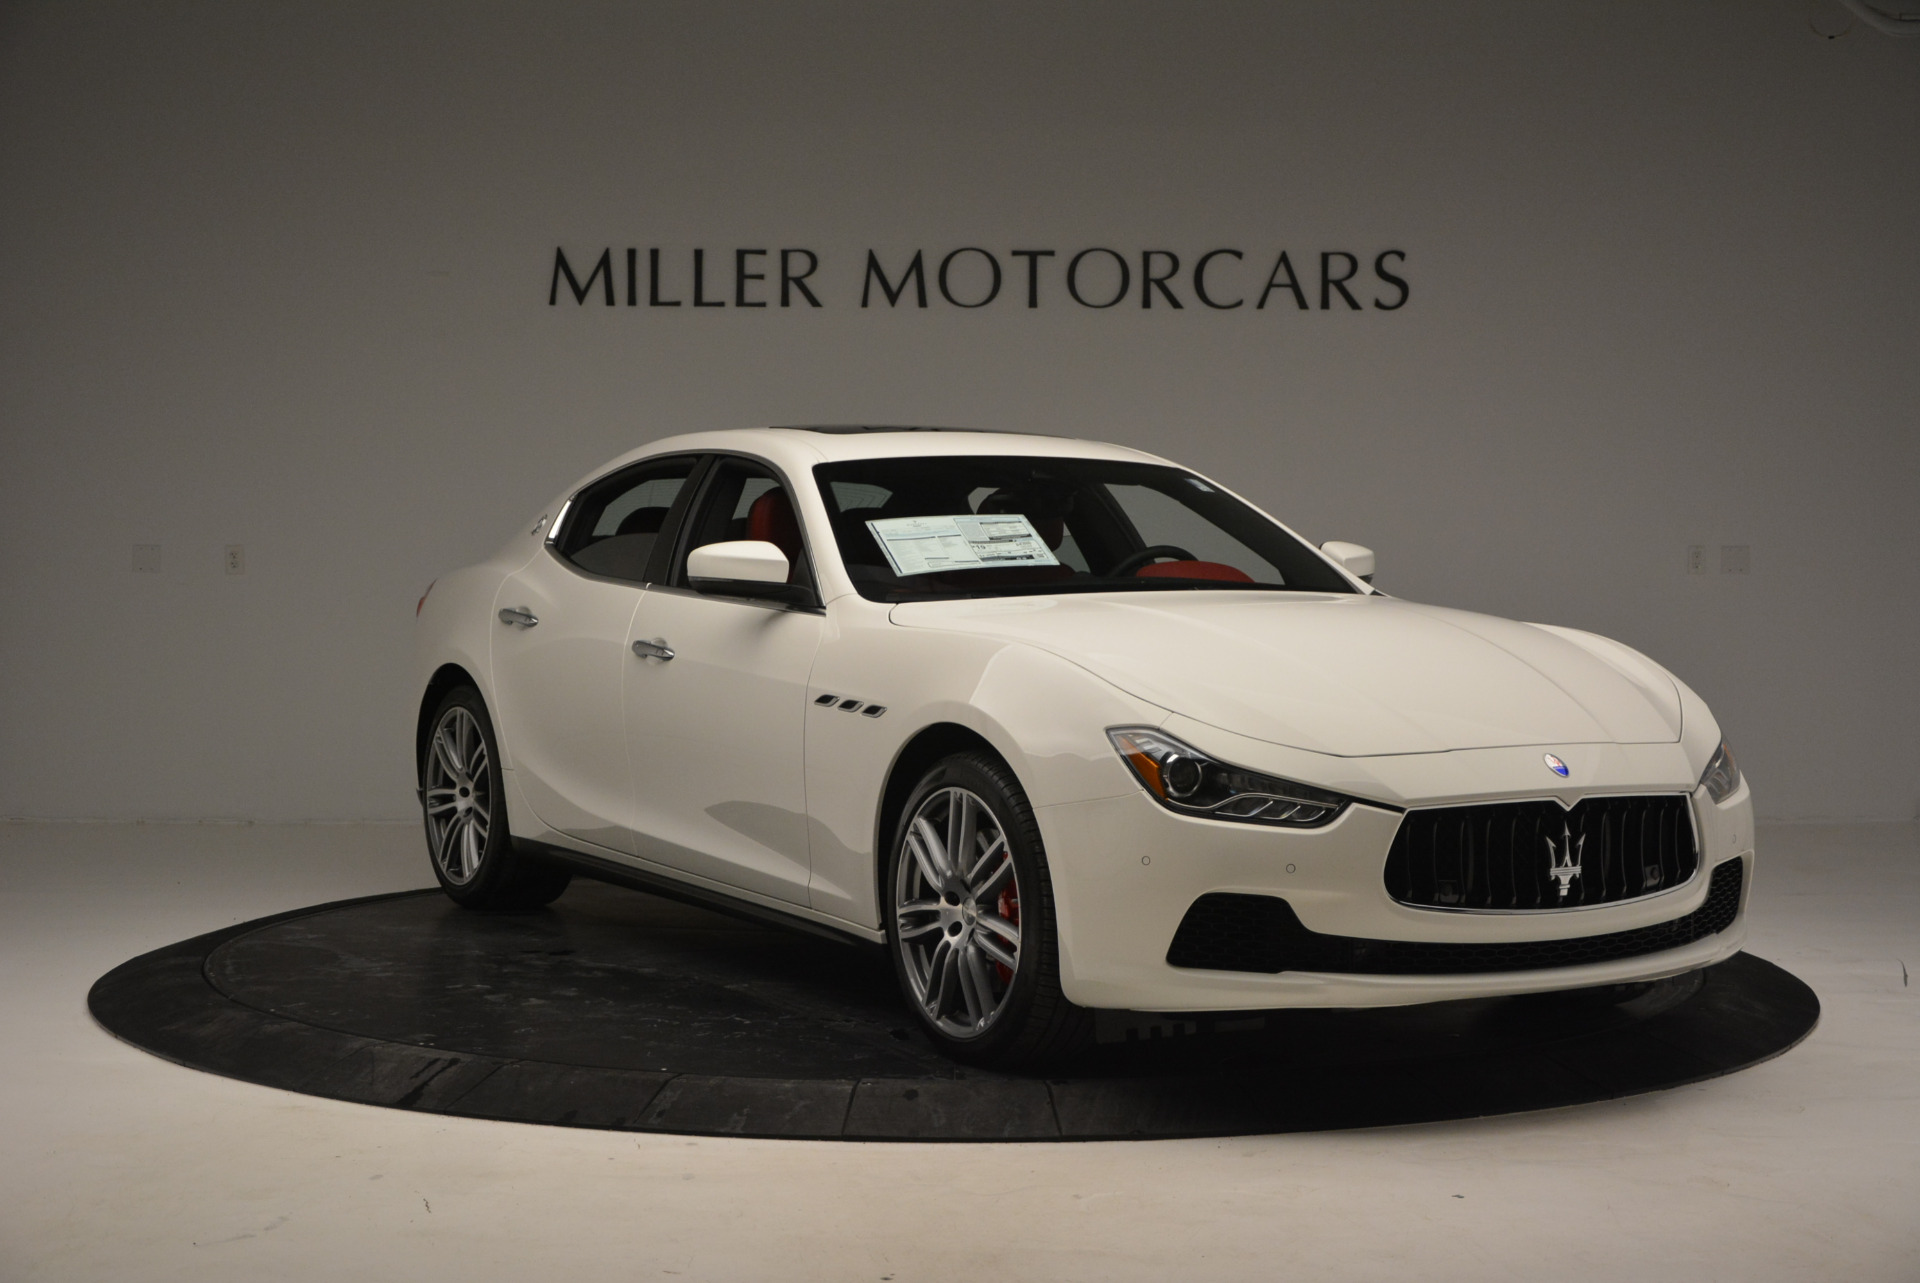 New 2017 Maserati Ghibli S Q4 For Sale In Westport, CT 792_p11